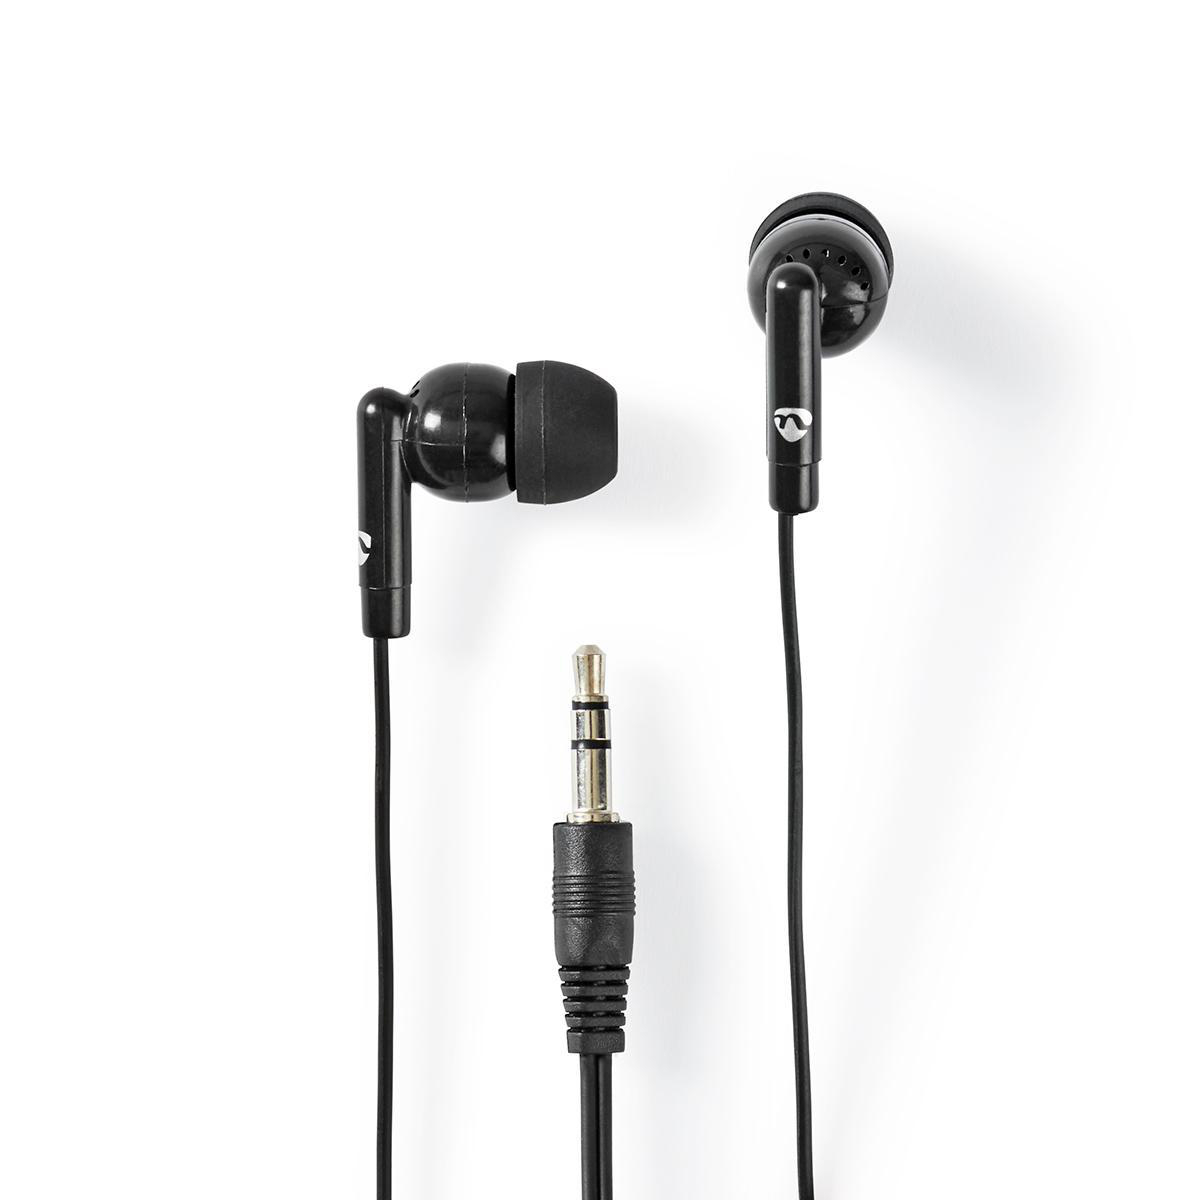 Nedis Auriculares con Cable | Cable